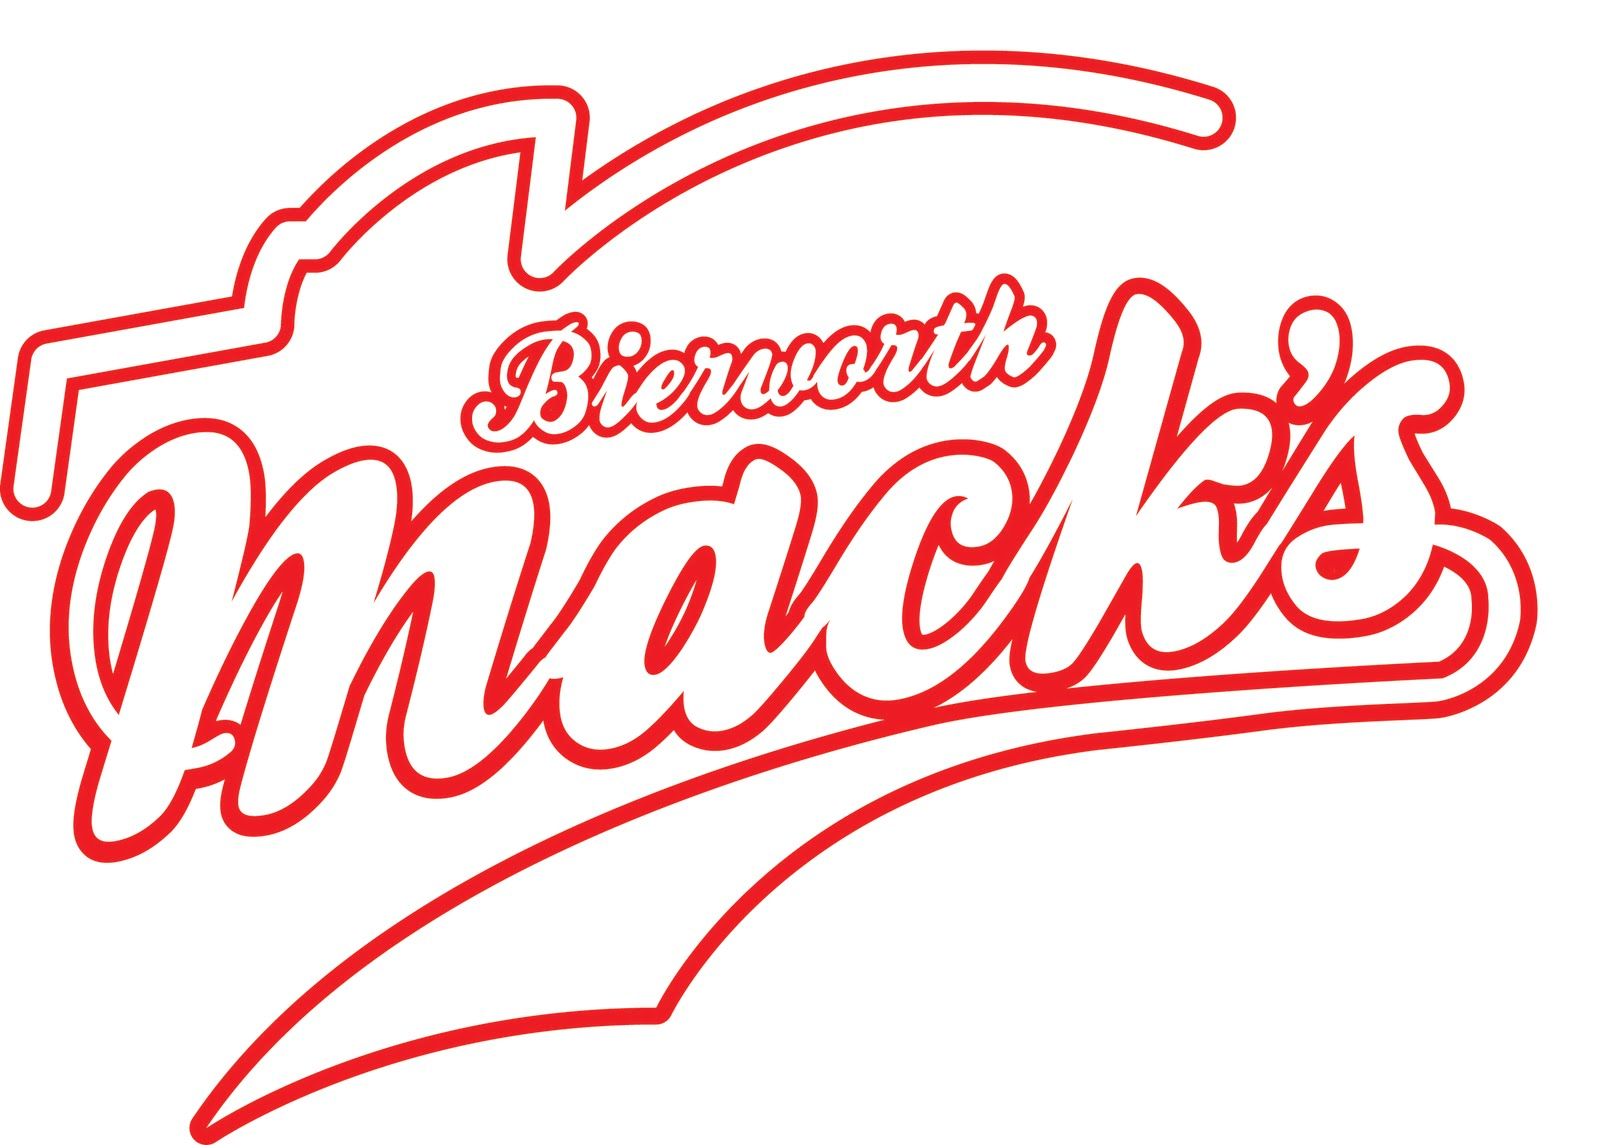 Mack logo submited images pic2fly